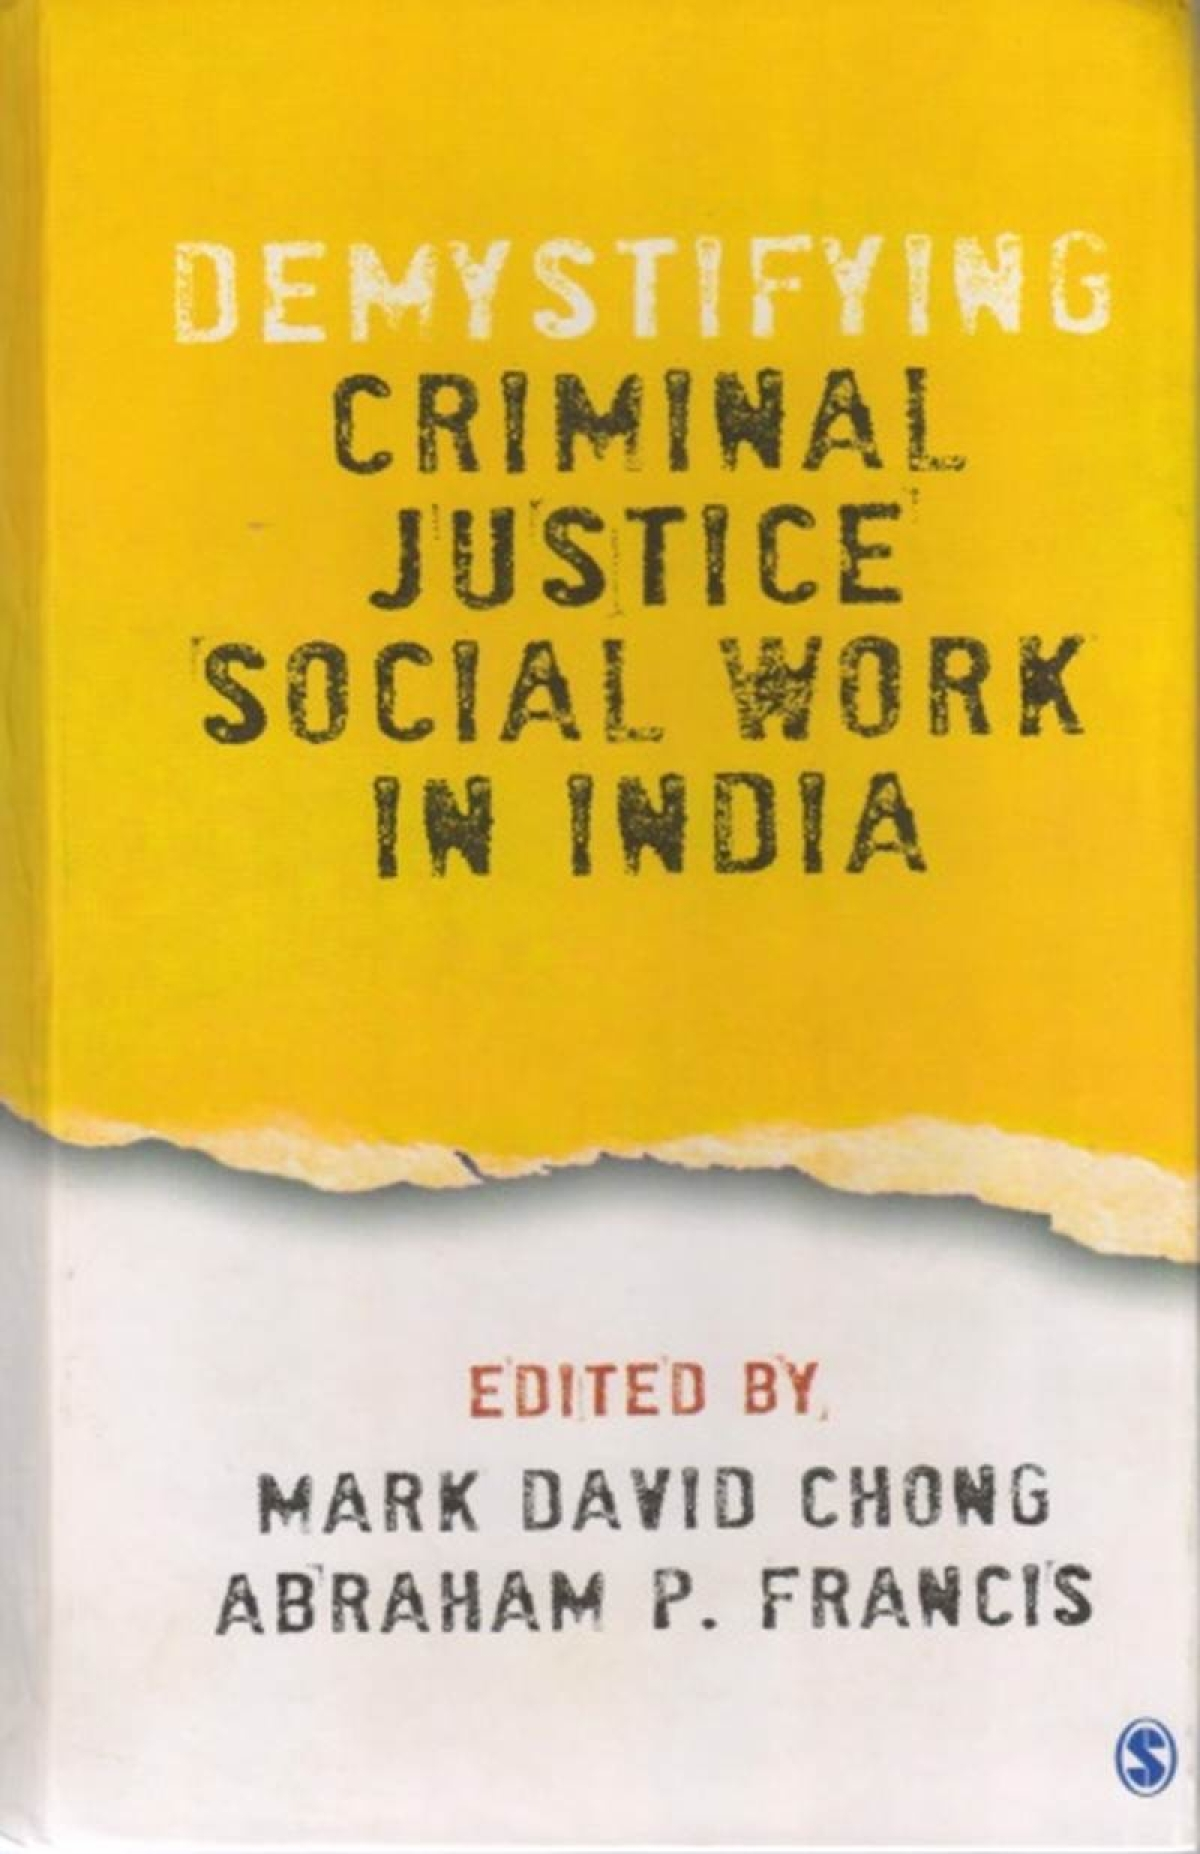 Demystifying Criminal Justice Social Work in India: Review